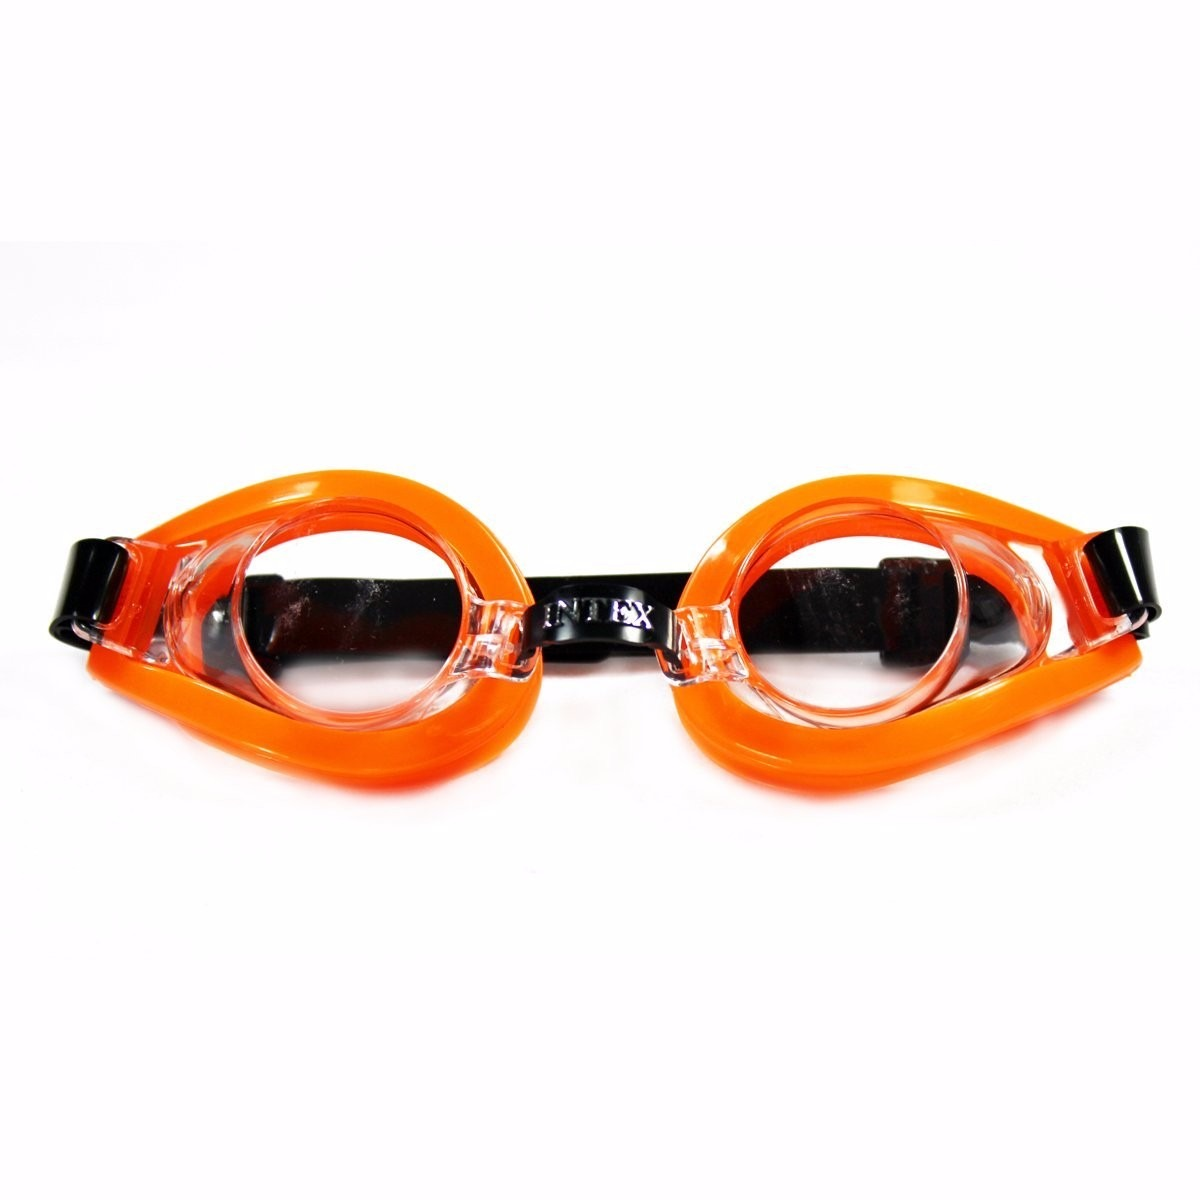 Culos mergulho mascara nata o aviador infantil regulavel for Oculos piscina